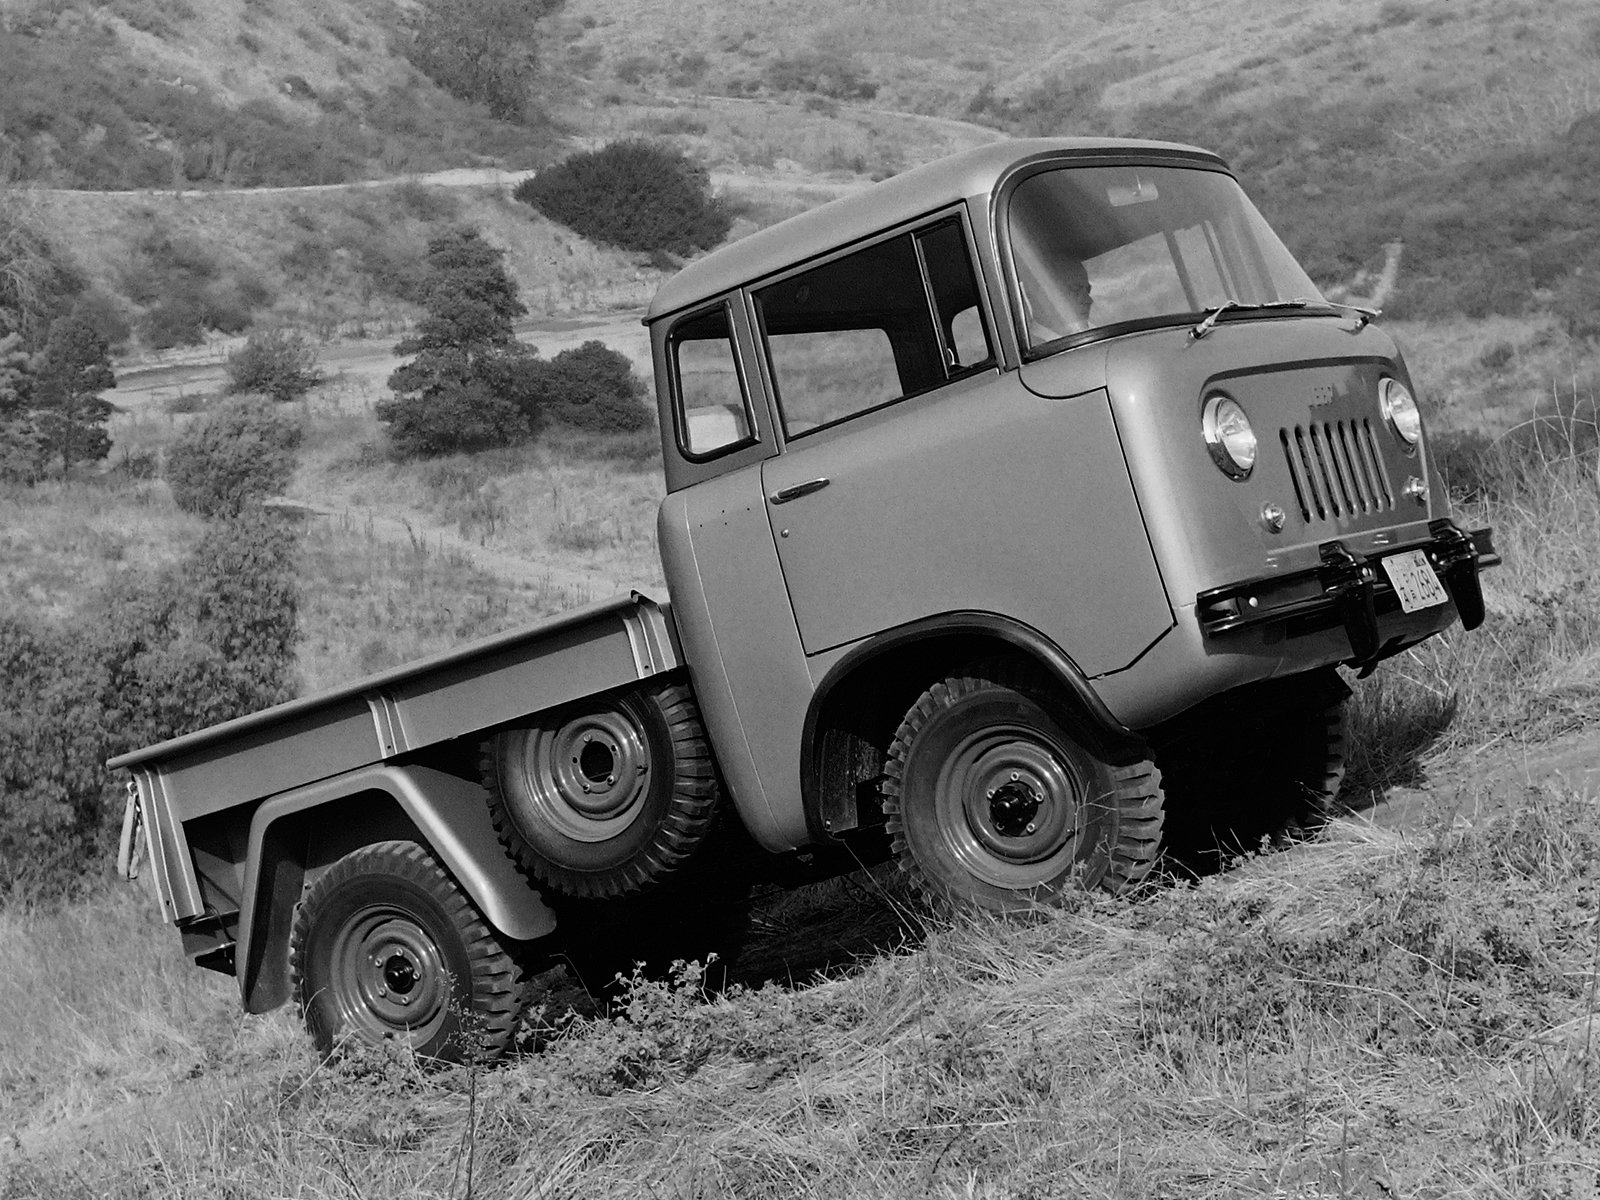 1957 Willys Jeep Fc 150 4x4 Pickup Offrosd Military 3 Wallpaper Concept Truck 1600x1200 287162 Wallpaperup